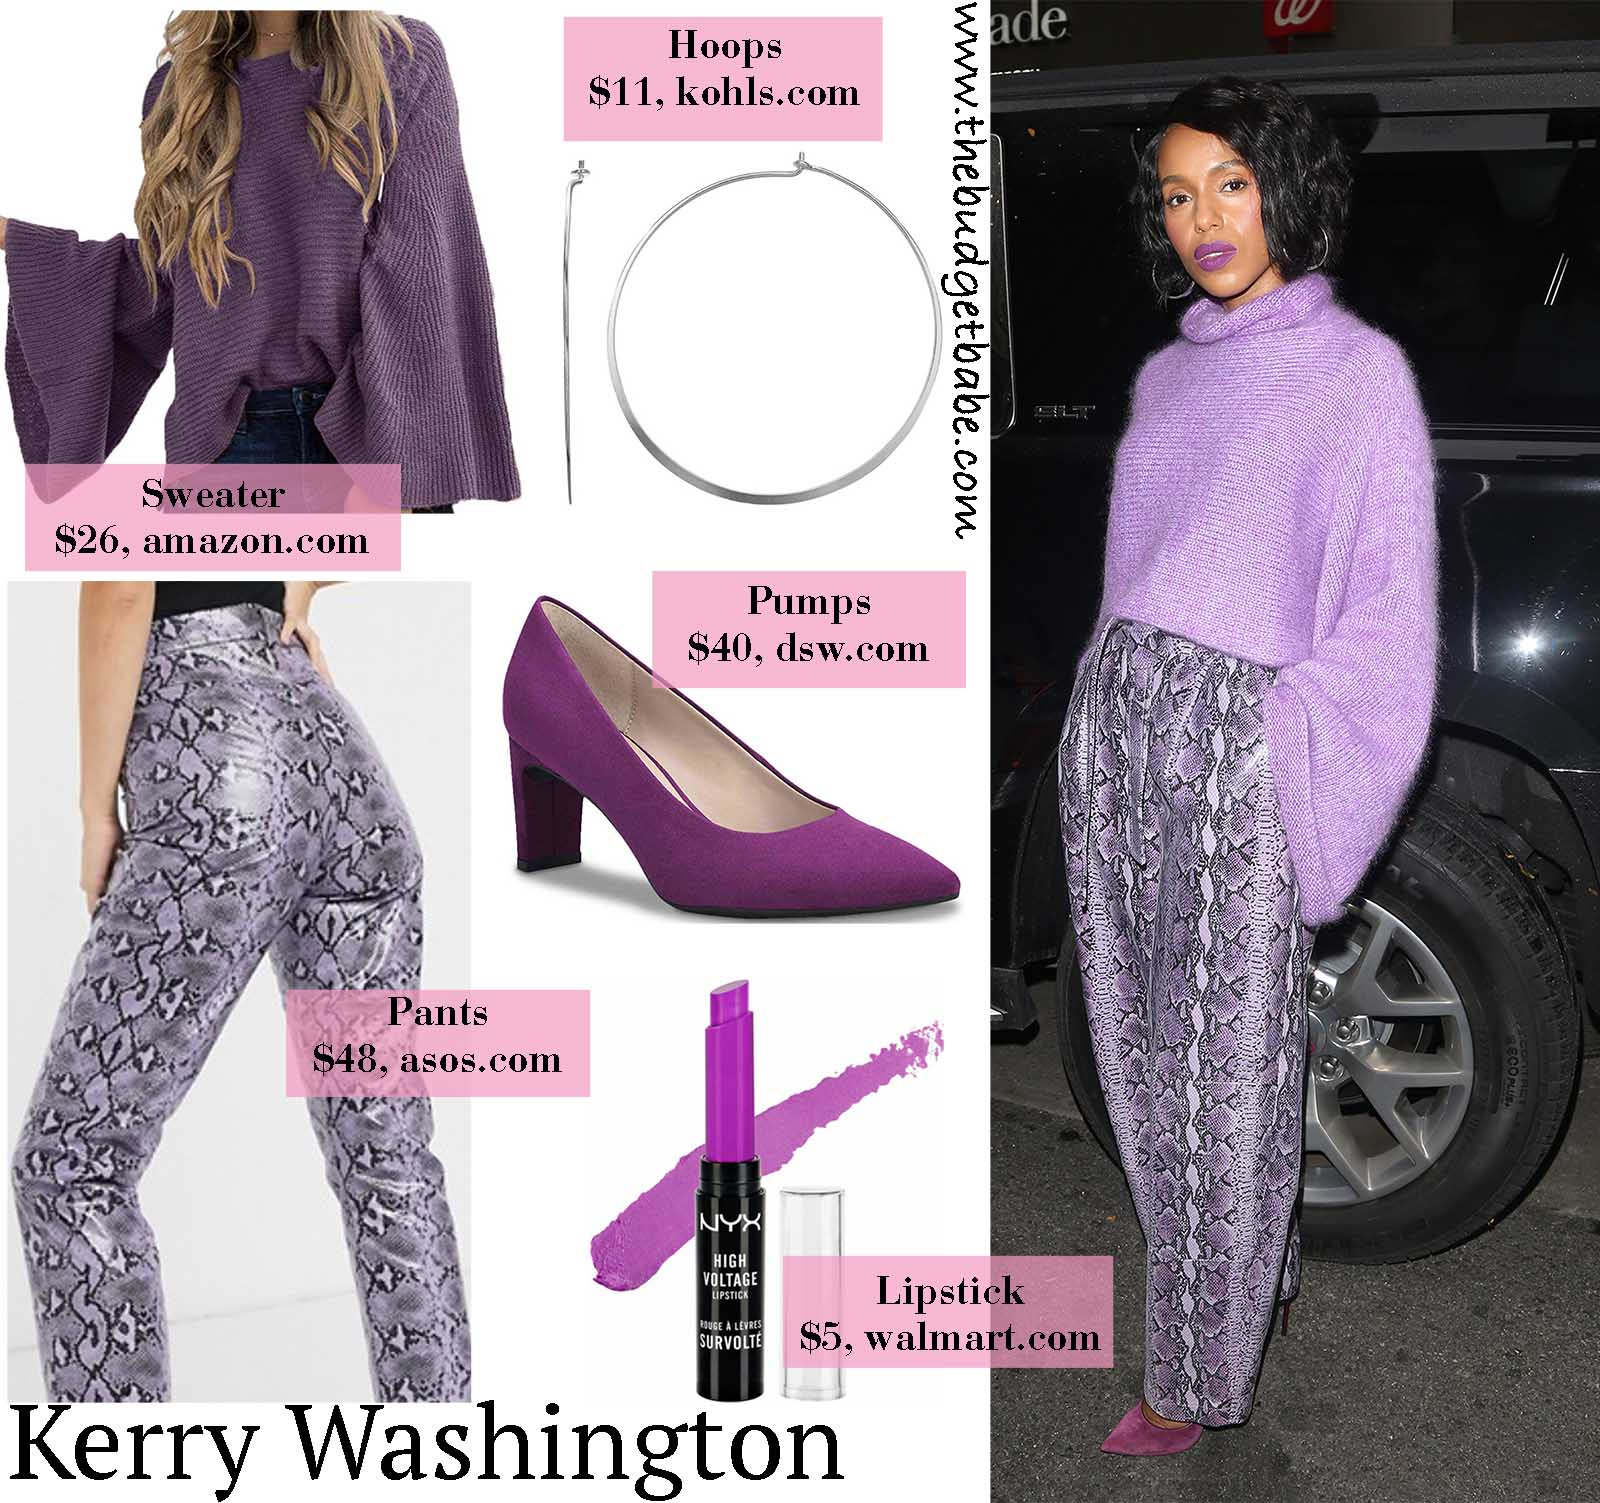 Kerry's purple snakeprint pants are show-stoppers!